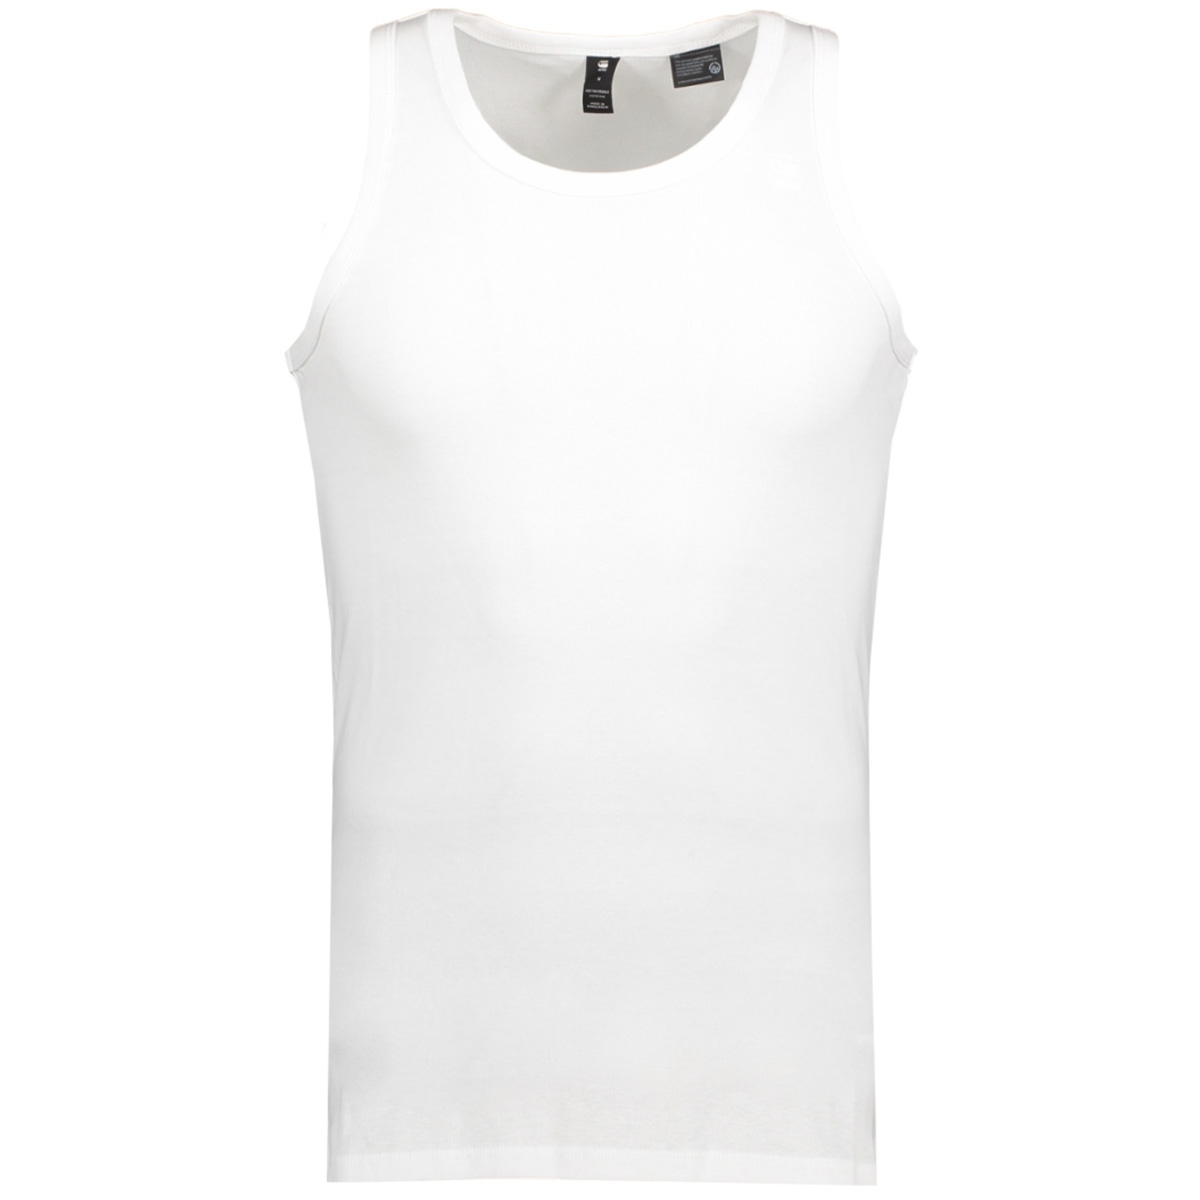 G-Star g-star base tanktop